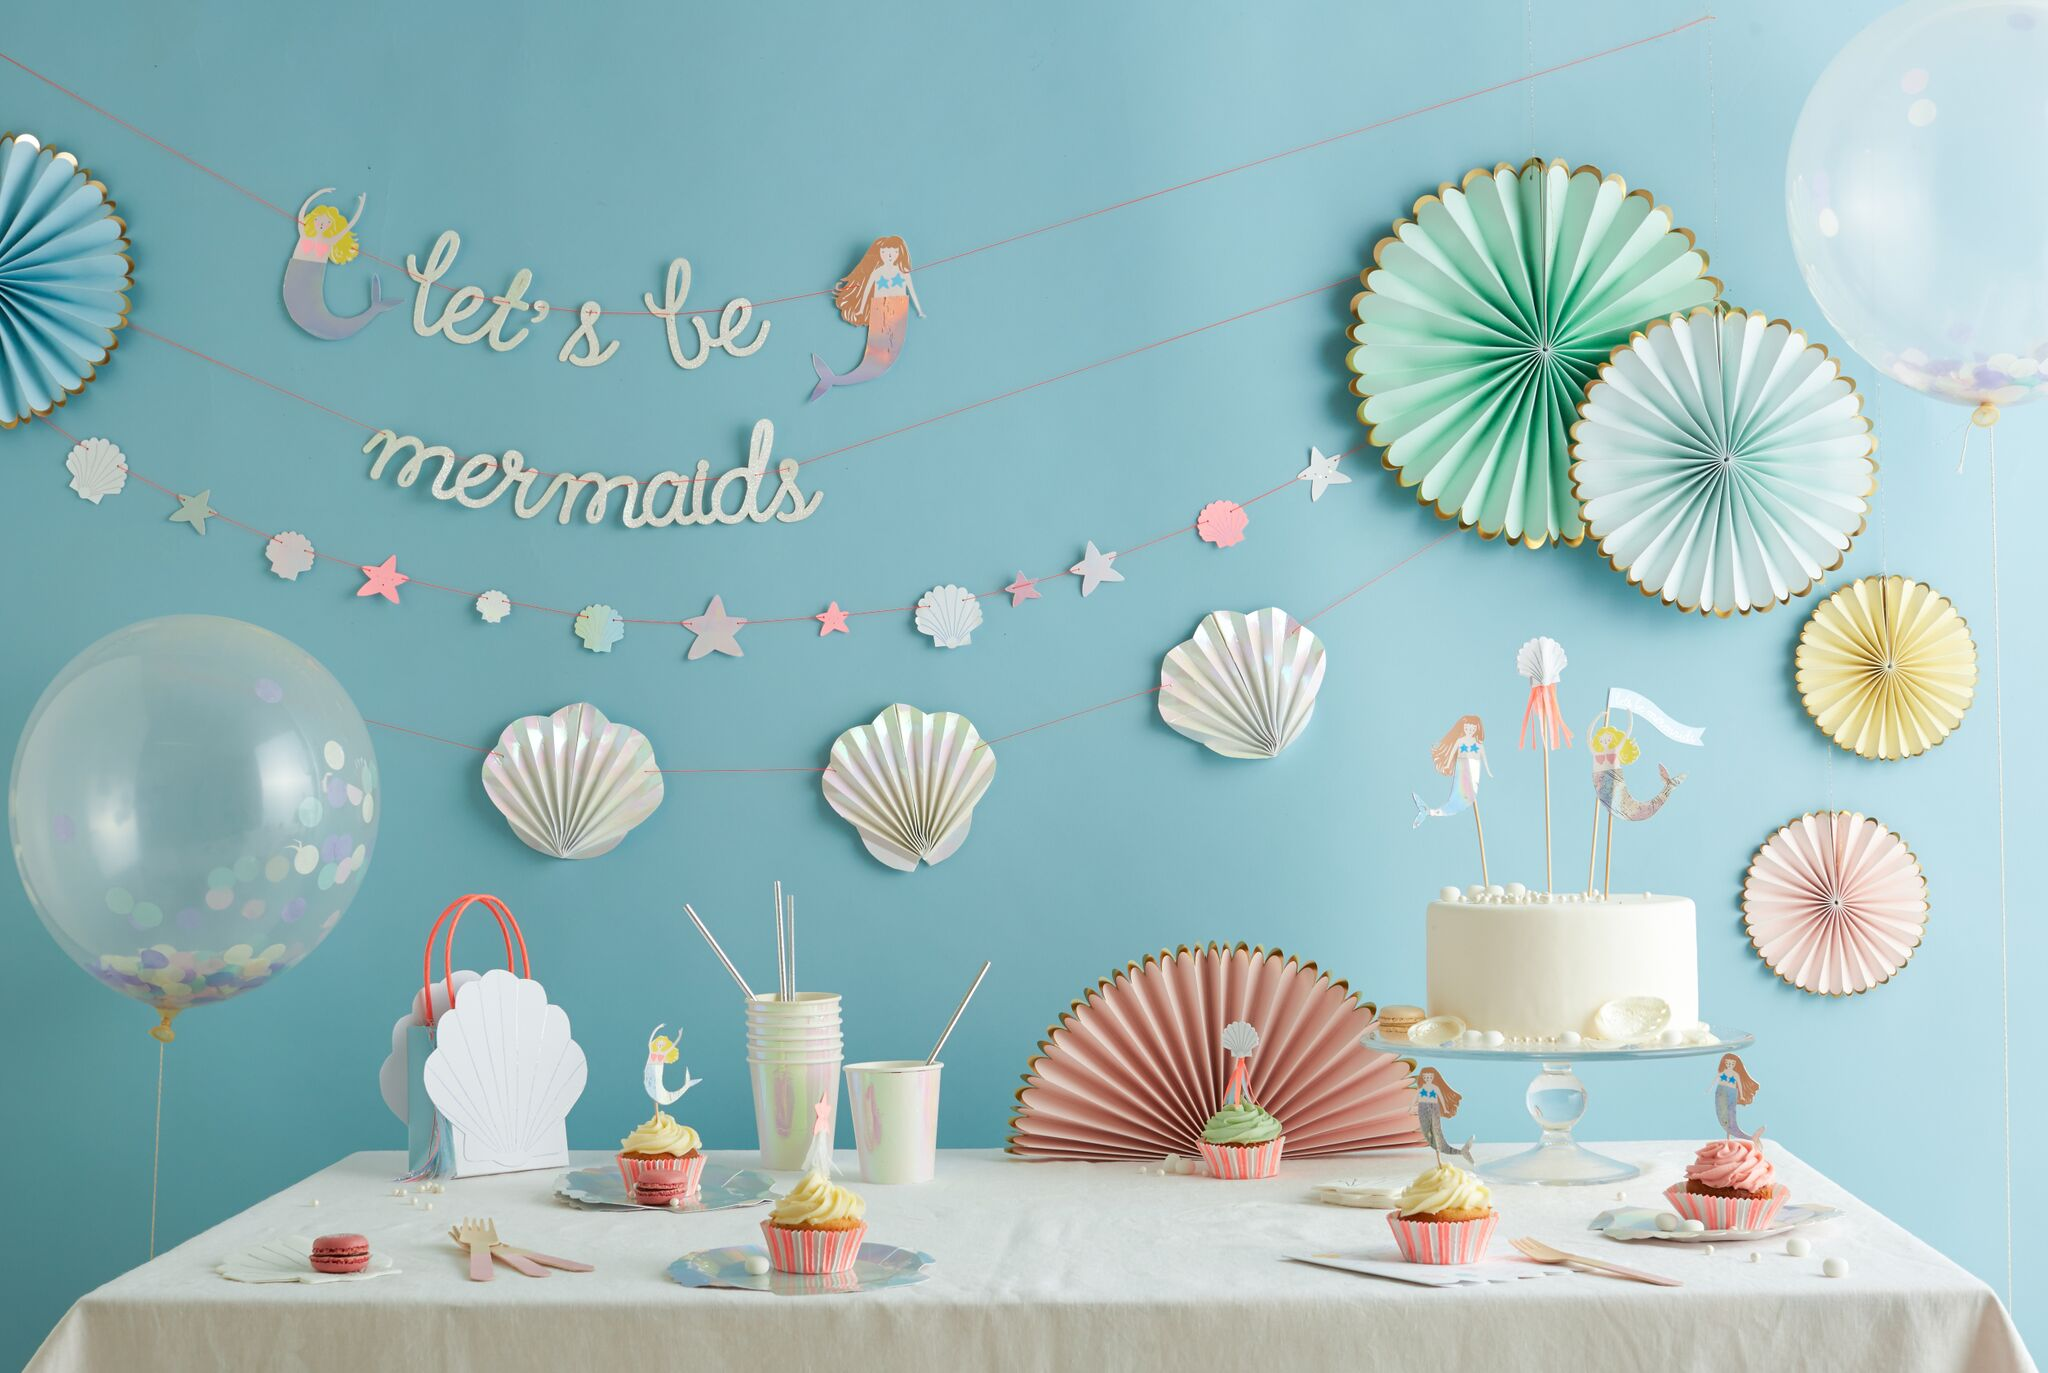 Let's party like a mermaid!